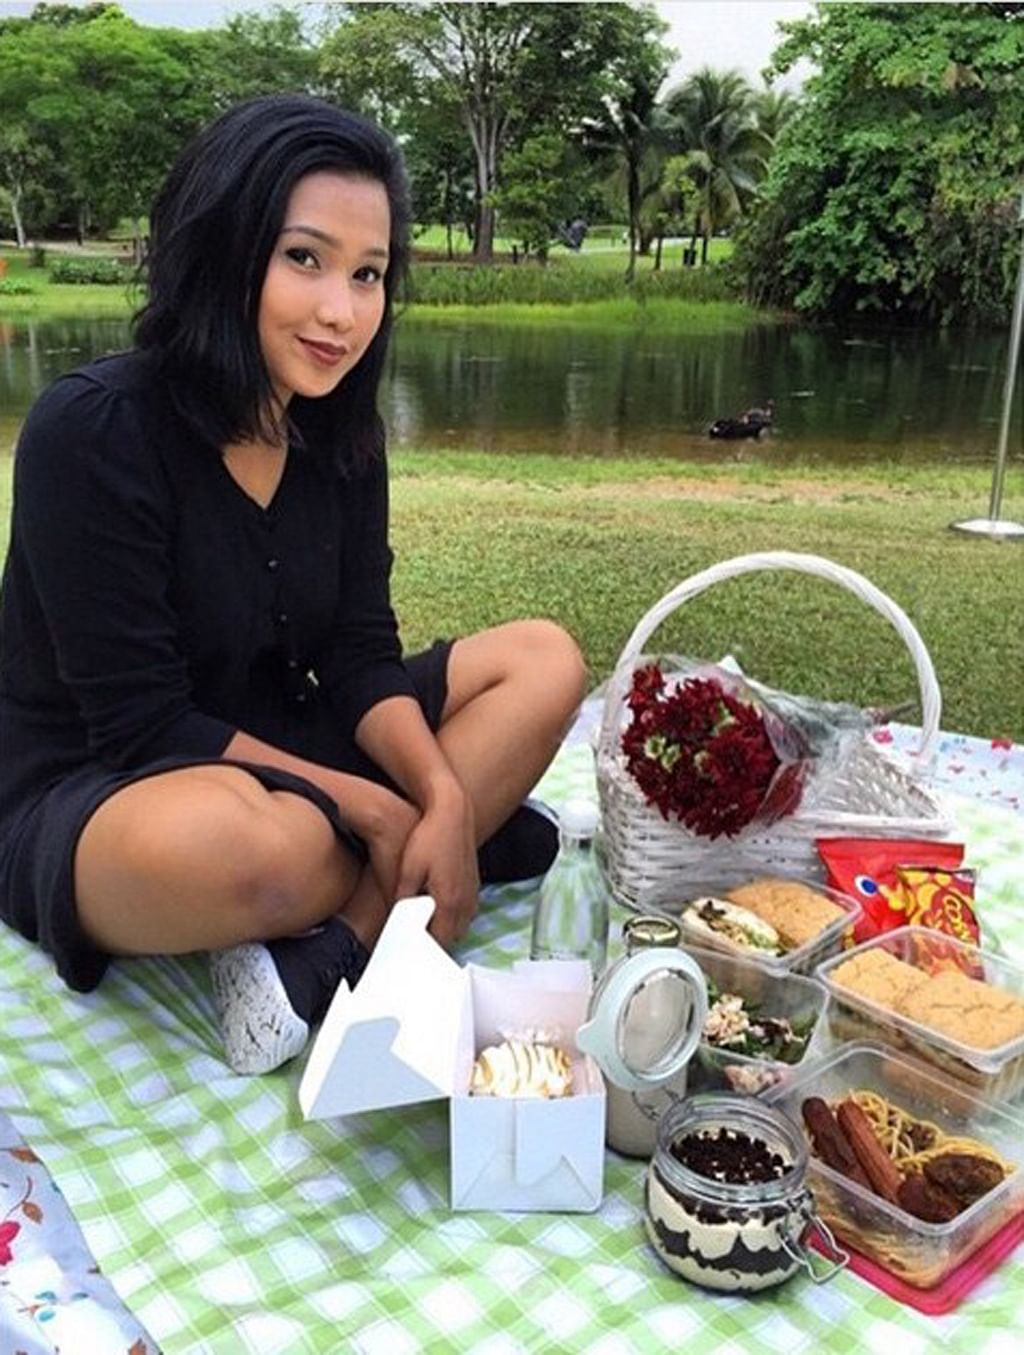 Picnics get poshed up, Lifestyle News & Top Stories - The Straits Times